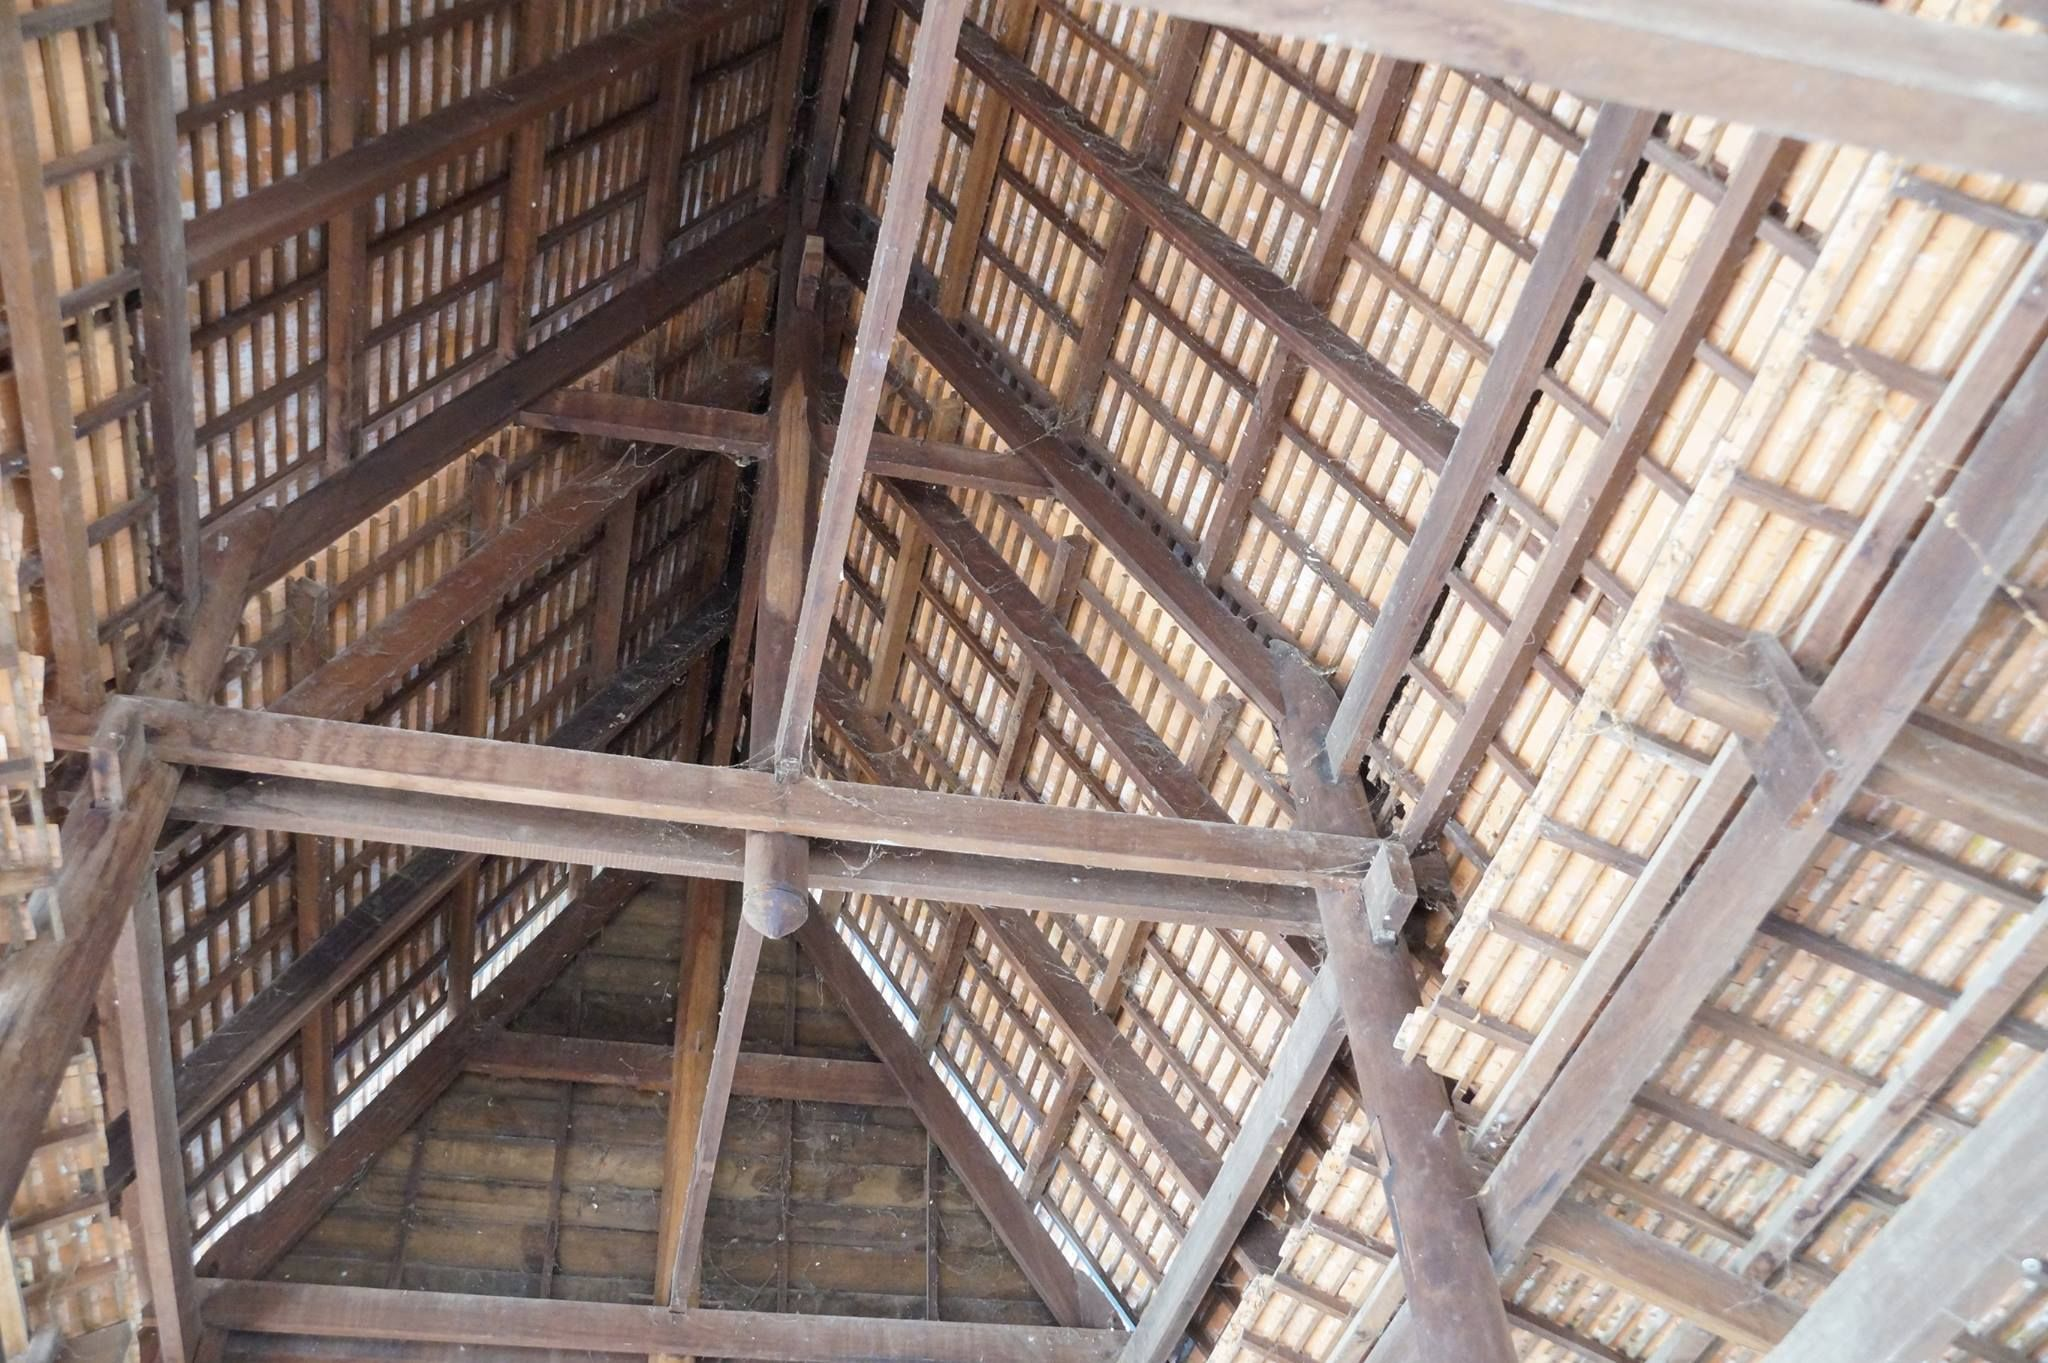 Cambodian khmer wooden house cambodian khmer wooden house cambodian khmer wooden house malvernweather Choice Image